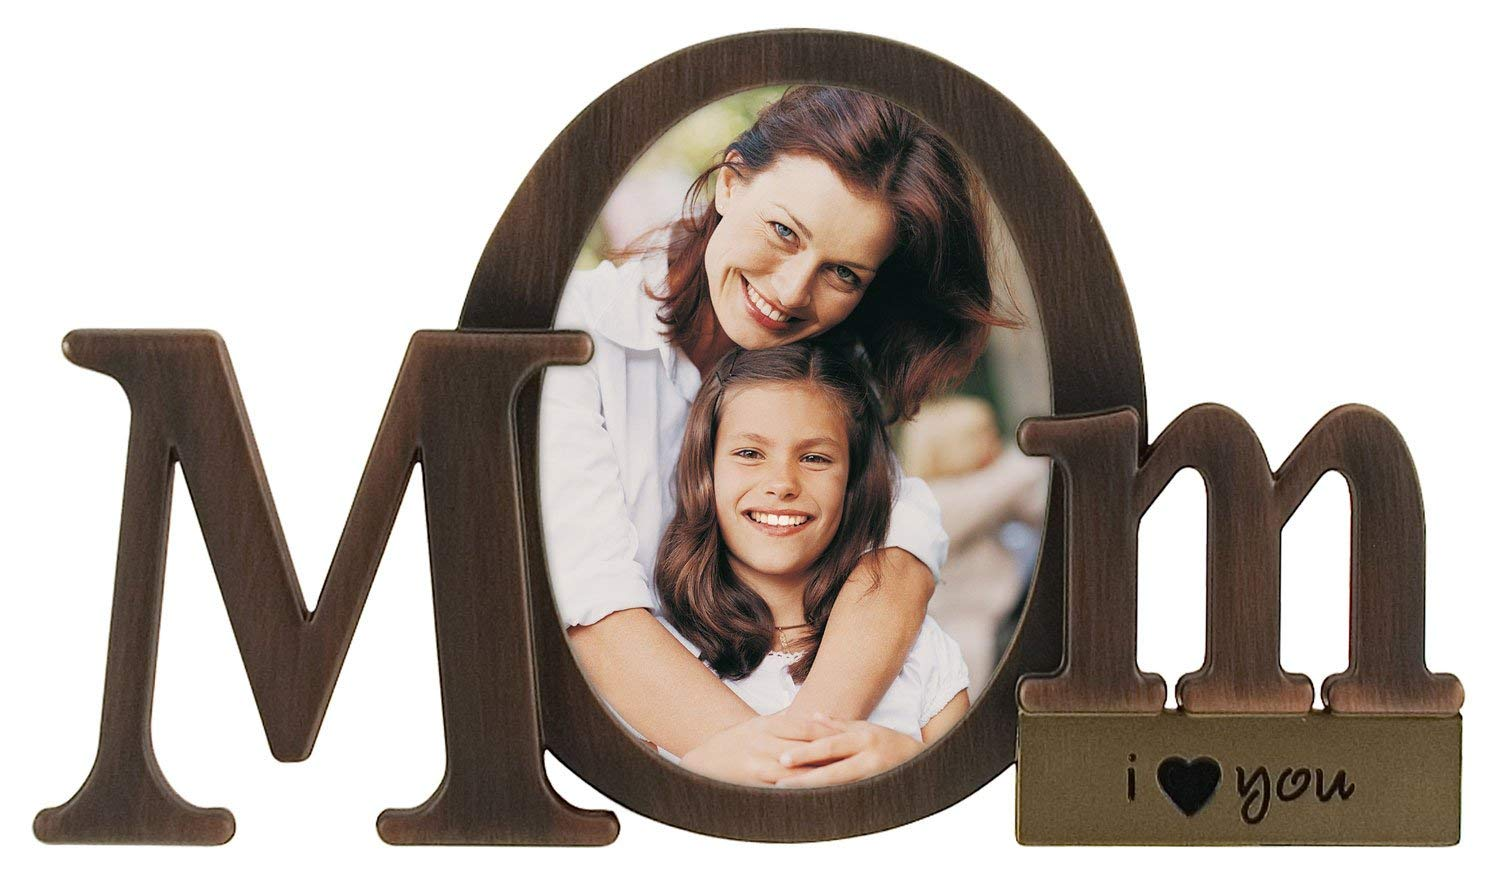 happy birthday mom picture frames ; 71haXsP1qPL